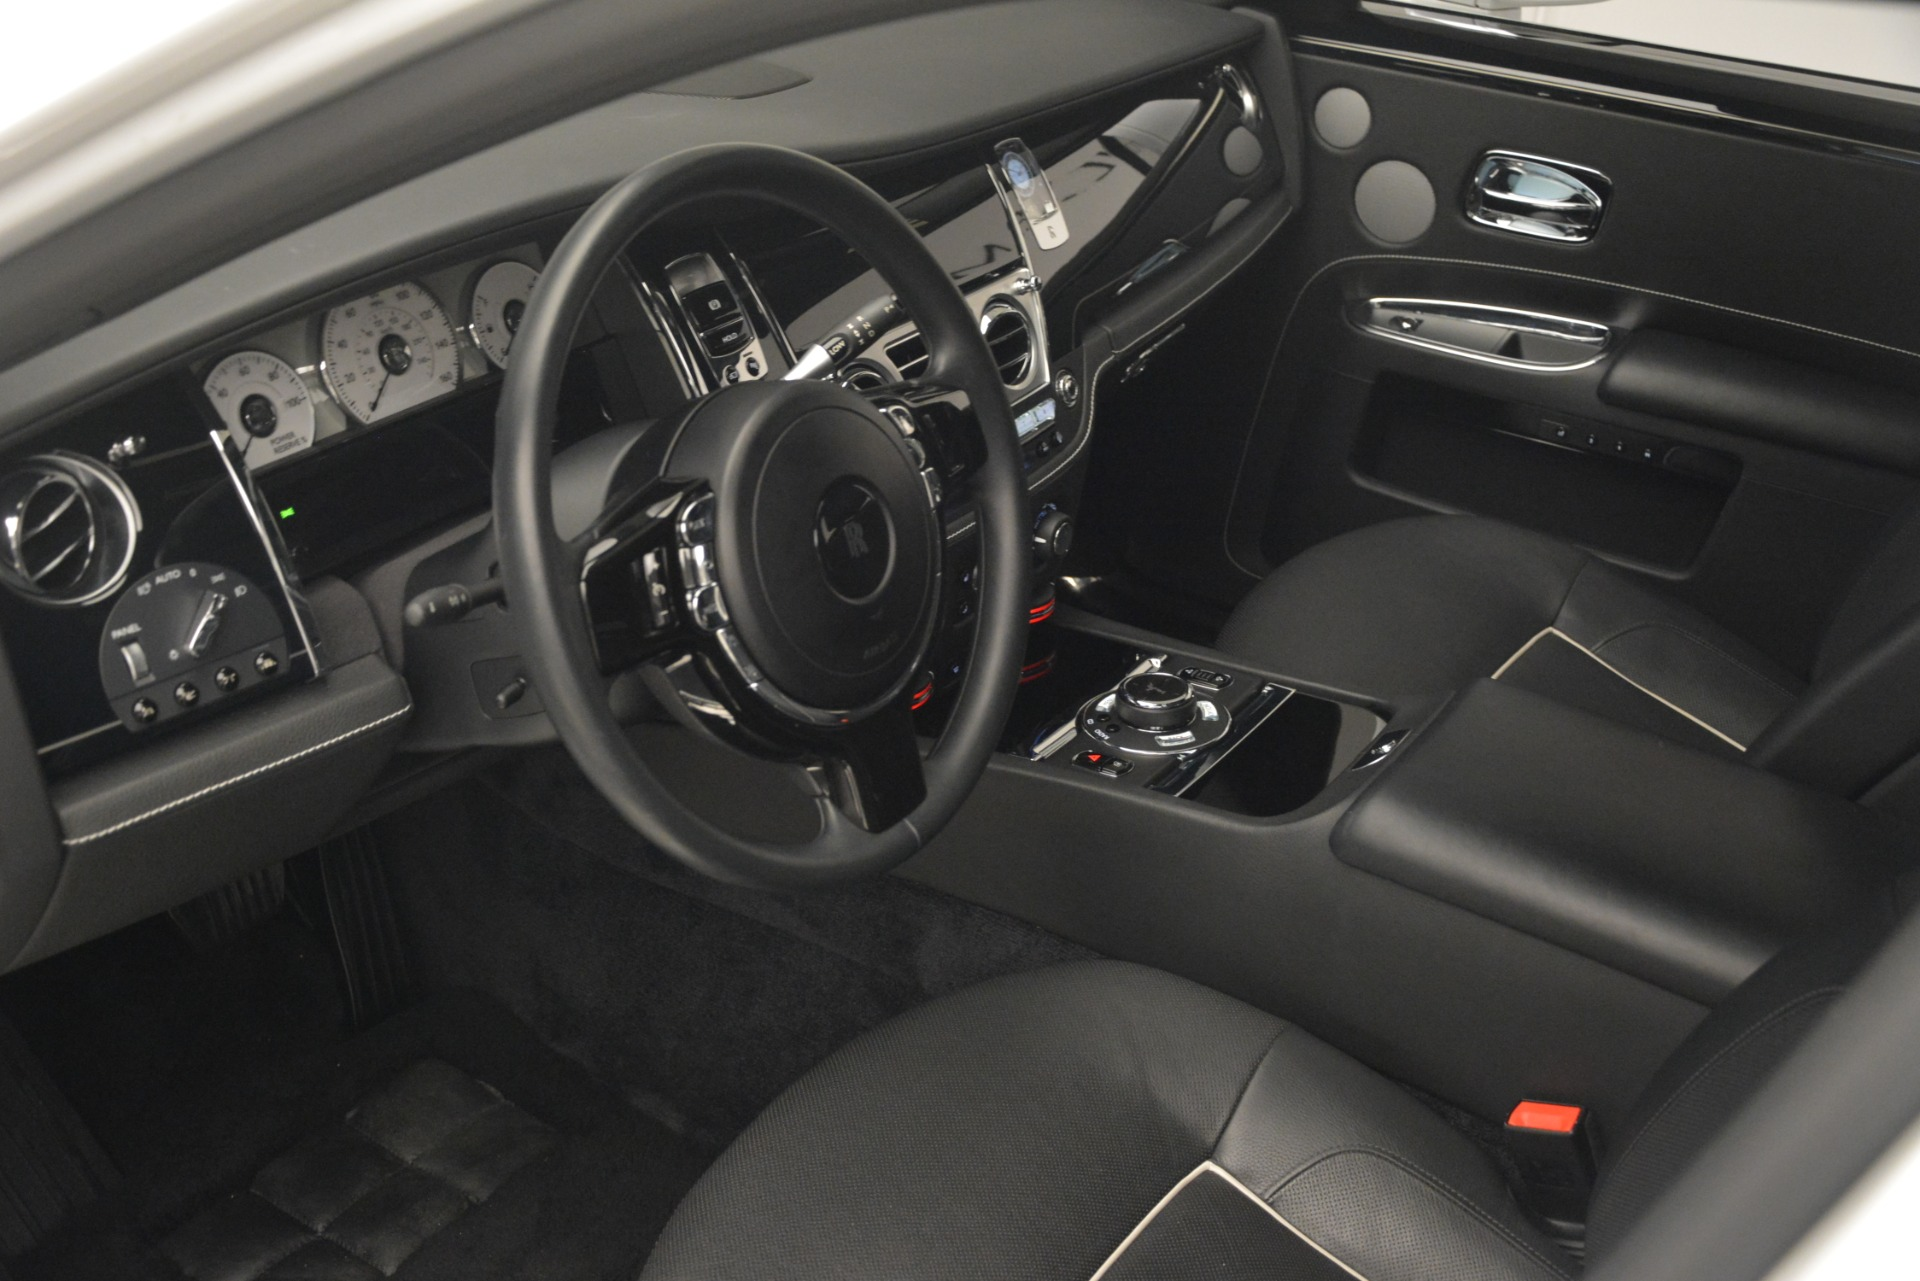 Used 2014 Rolls-Royce Ghost V-Spec For Sale In Greenwich, CT 2989_p14